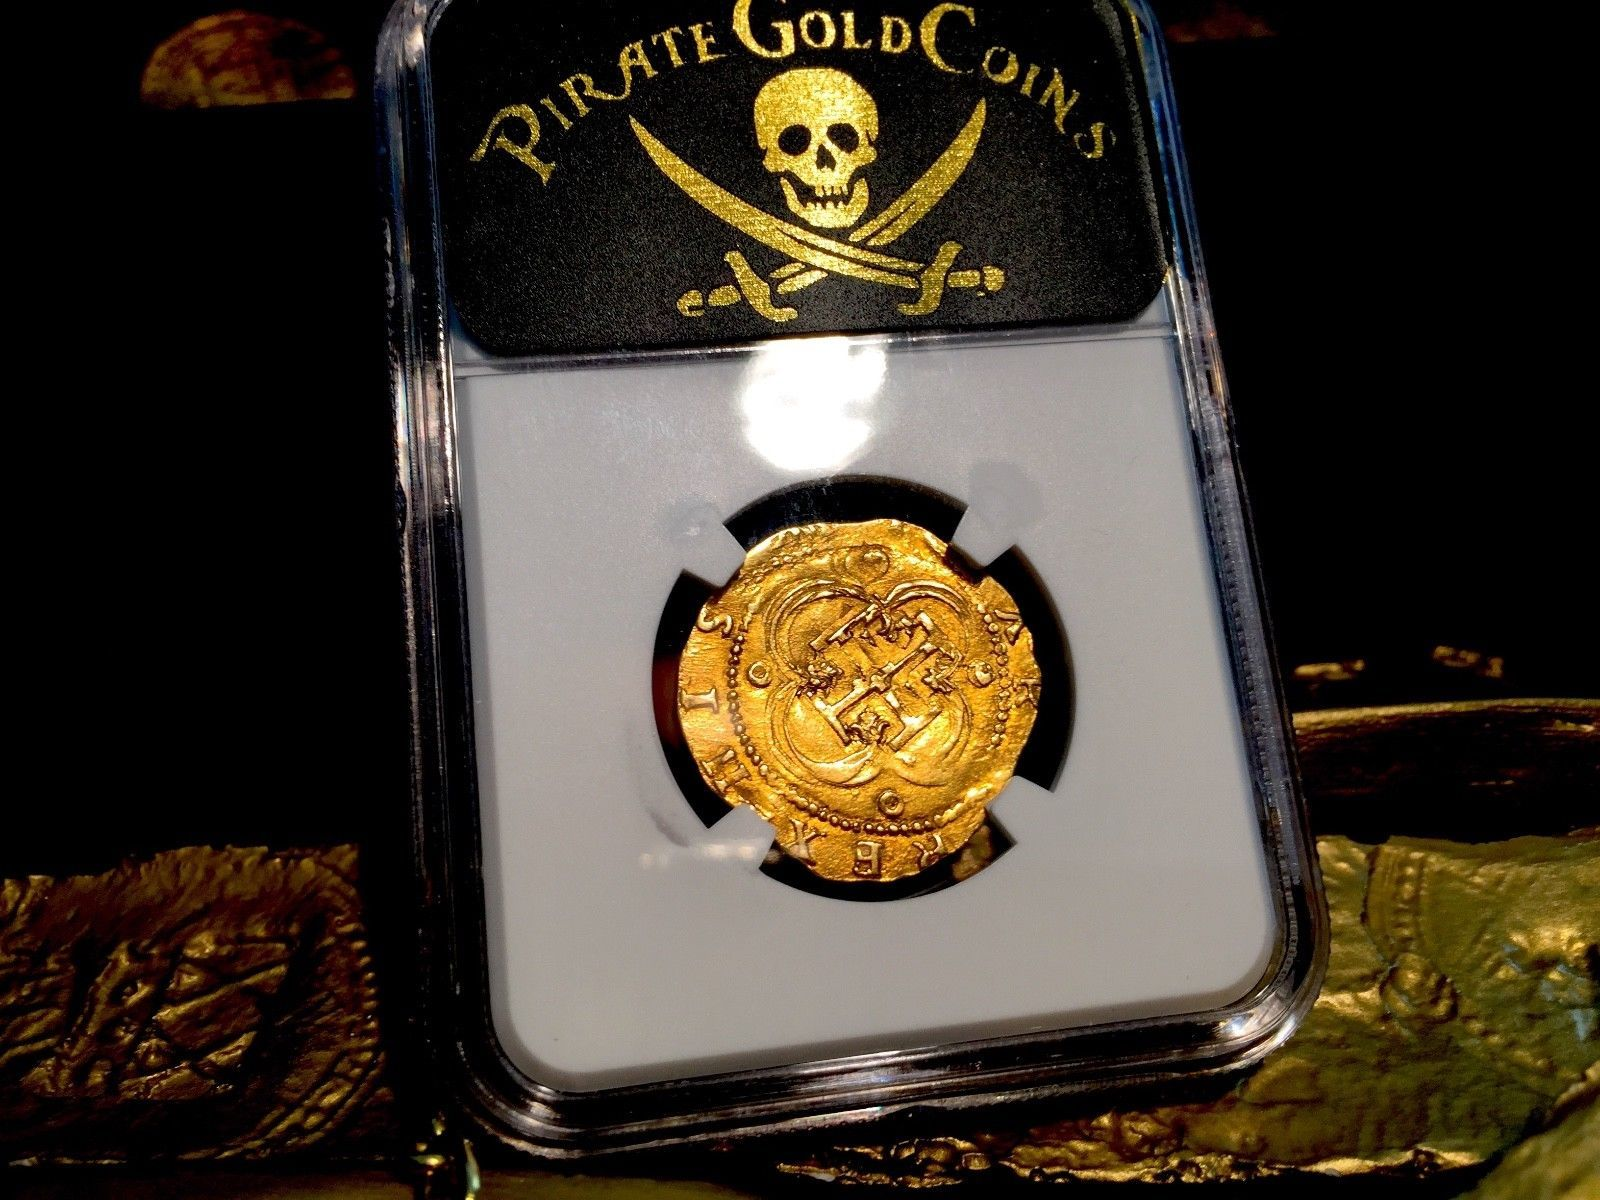 SPAIN 1556-98 2 ESCUDOS NGC 61 GOLD COB DOUBLOON COIN PHILIP II SQAURE D